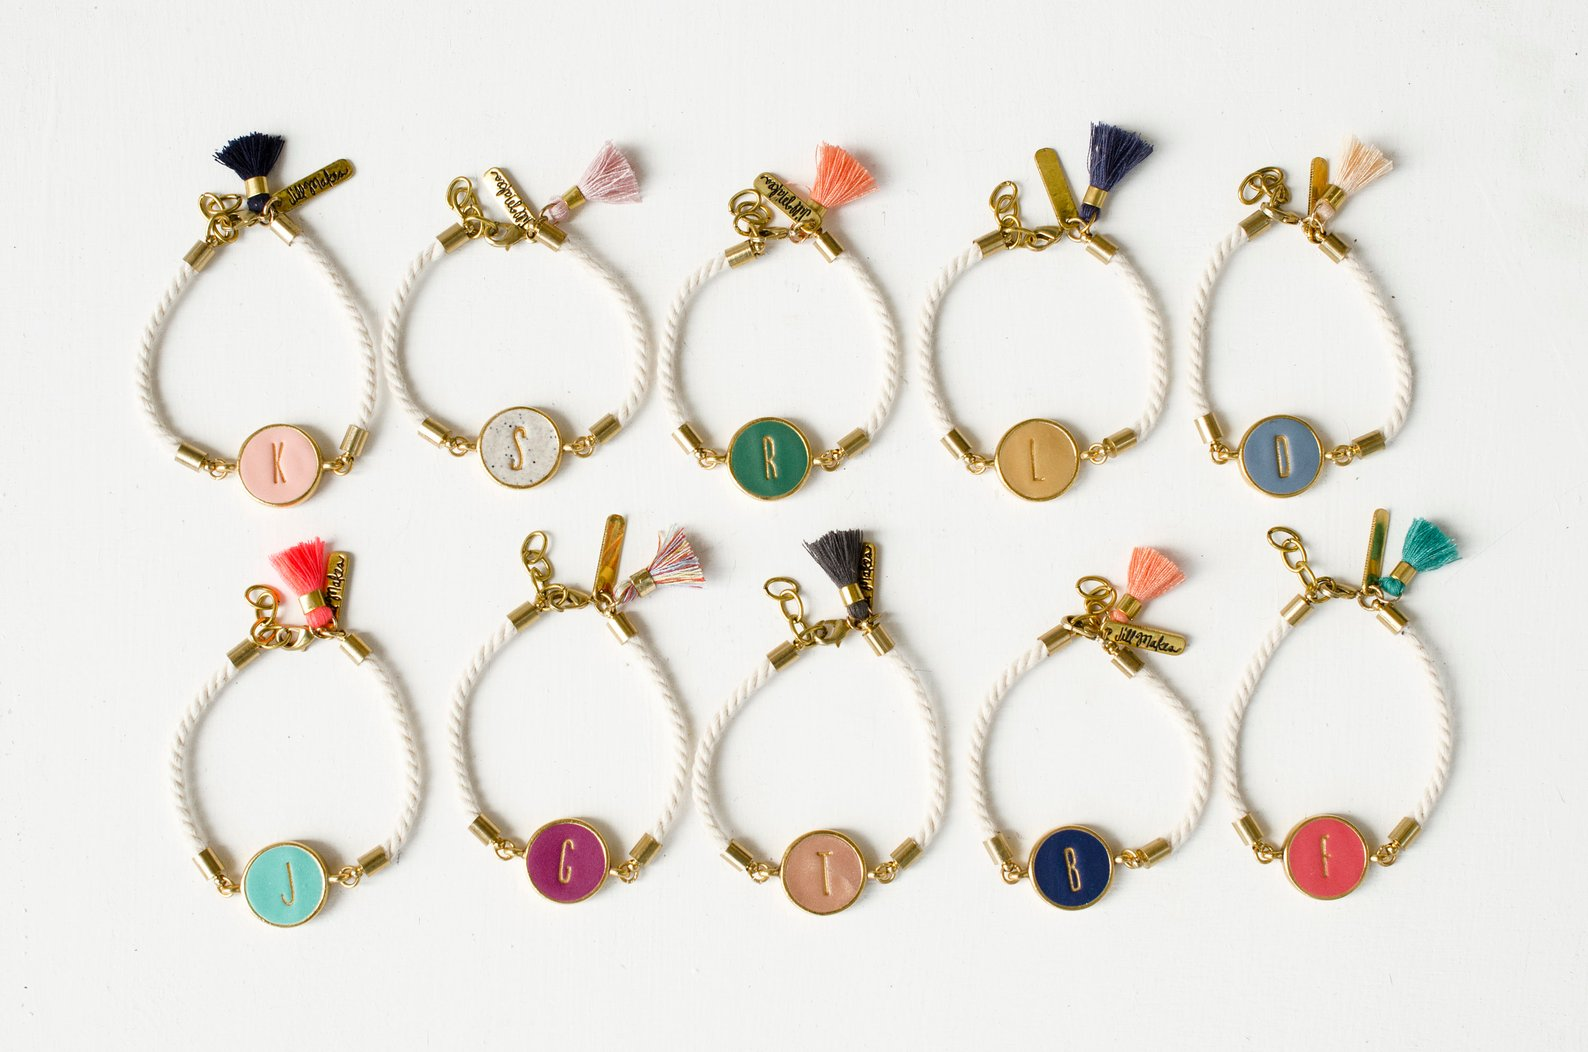 Personalized Initial Clay Bracelet By Jill Makes